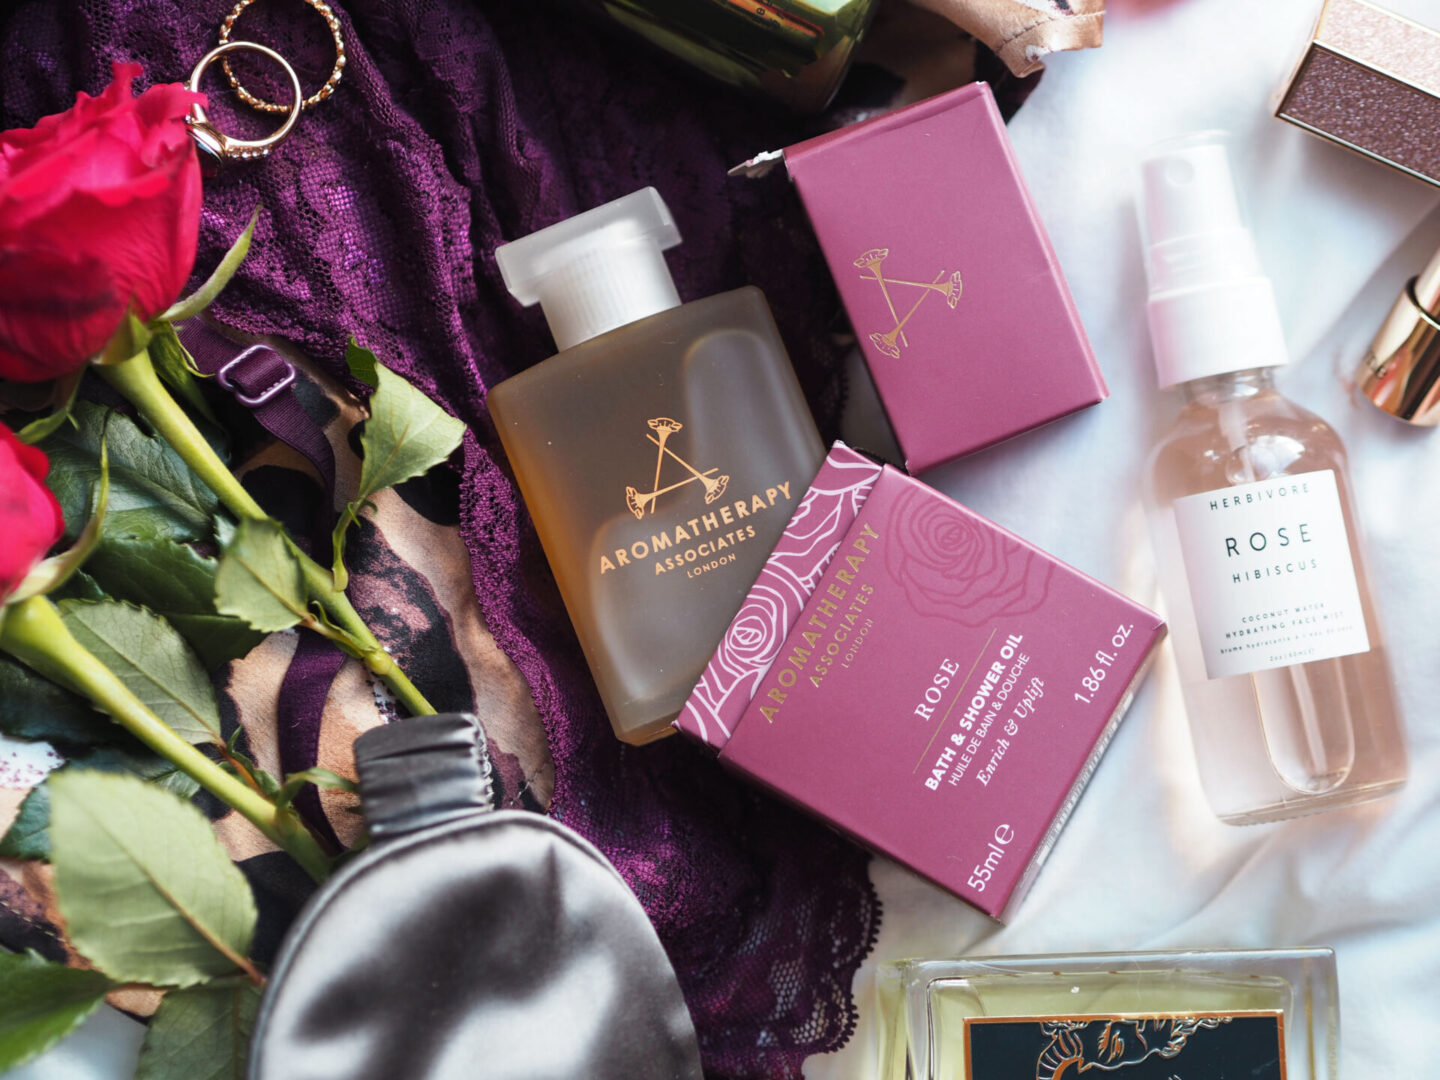 aromatherapy associates rose bath and shower oil